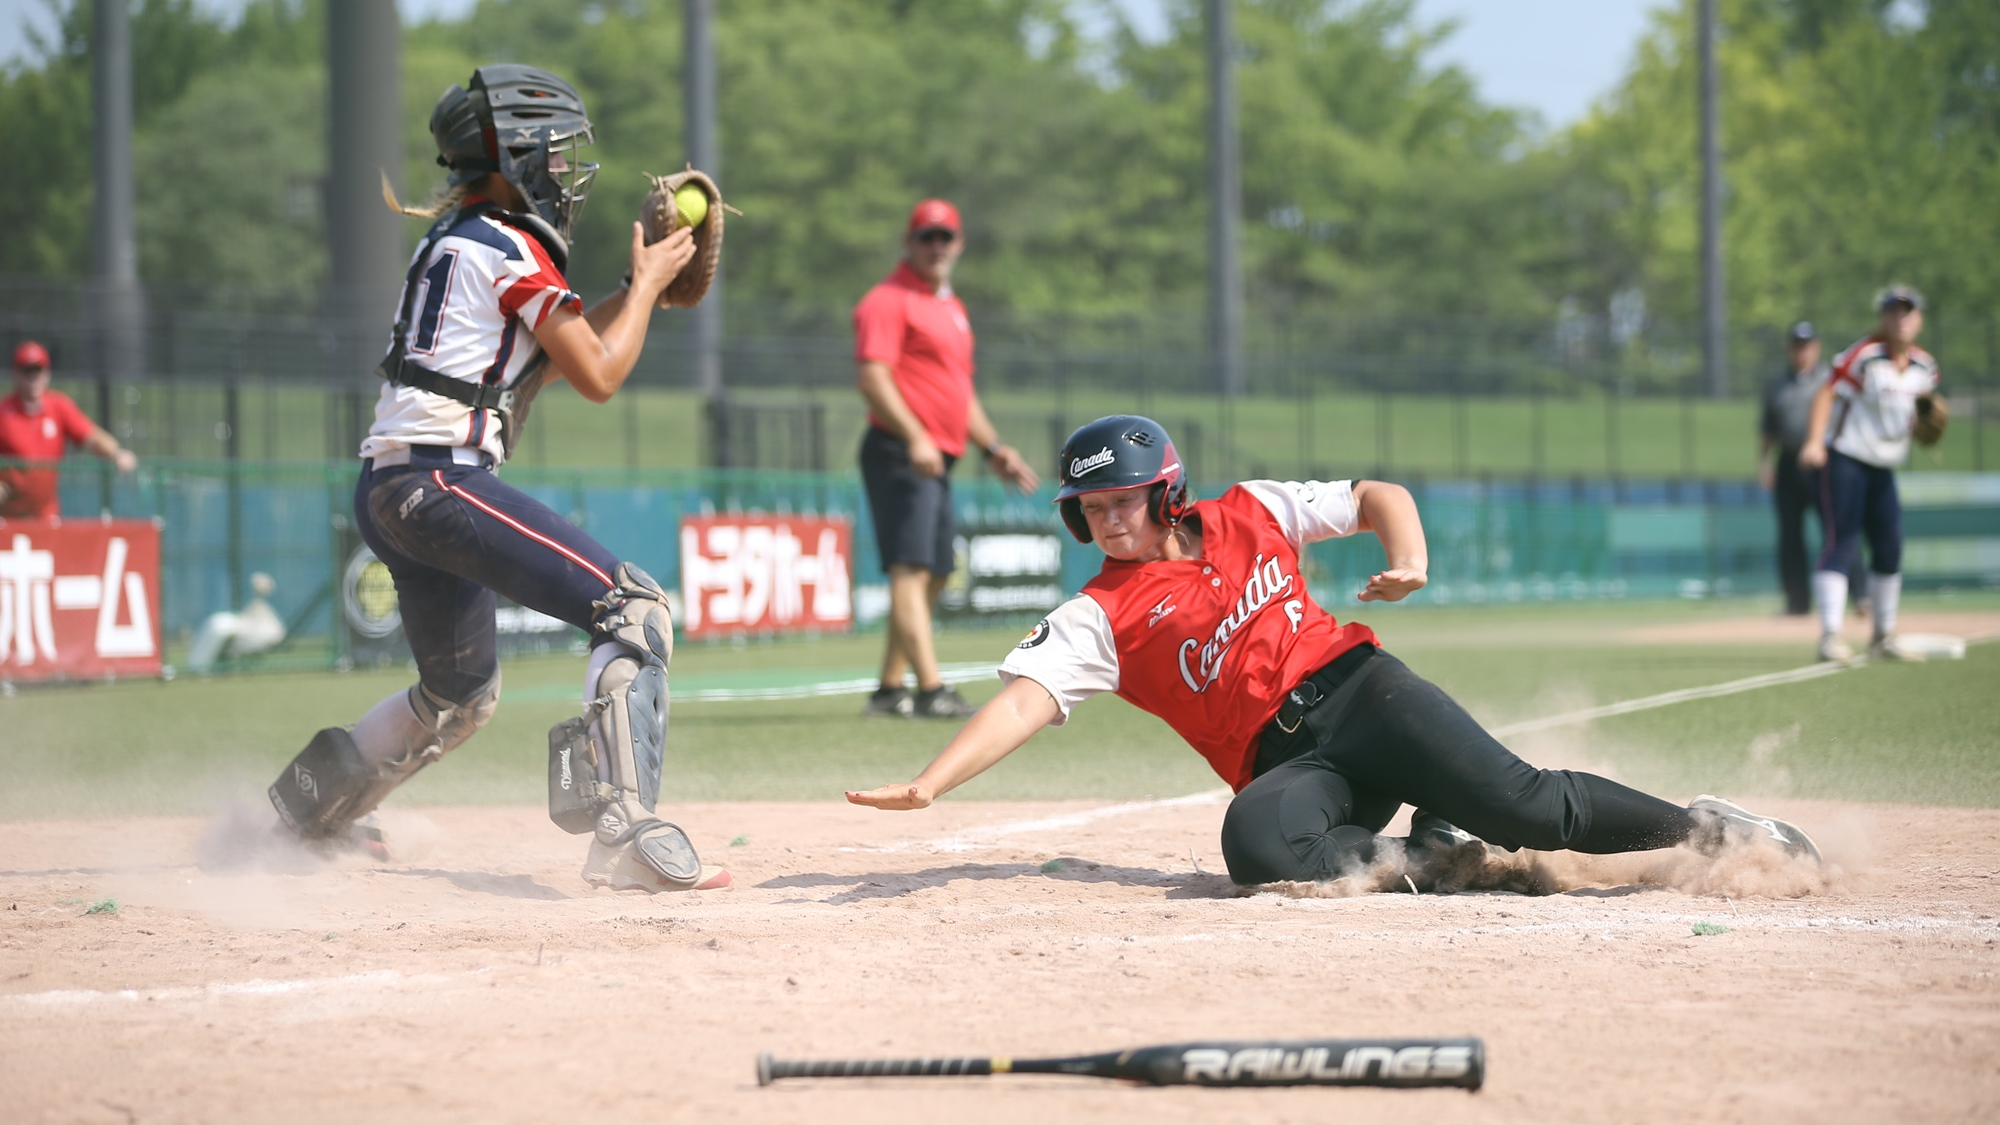 Holly Speers scores the final run of the game against Great Britain